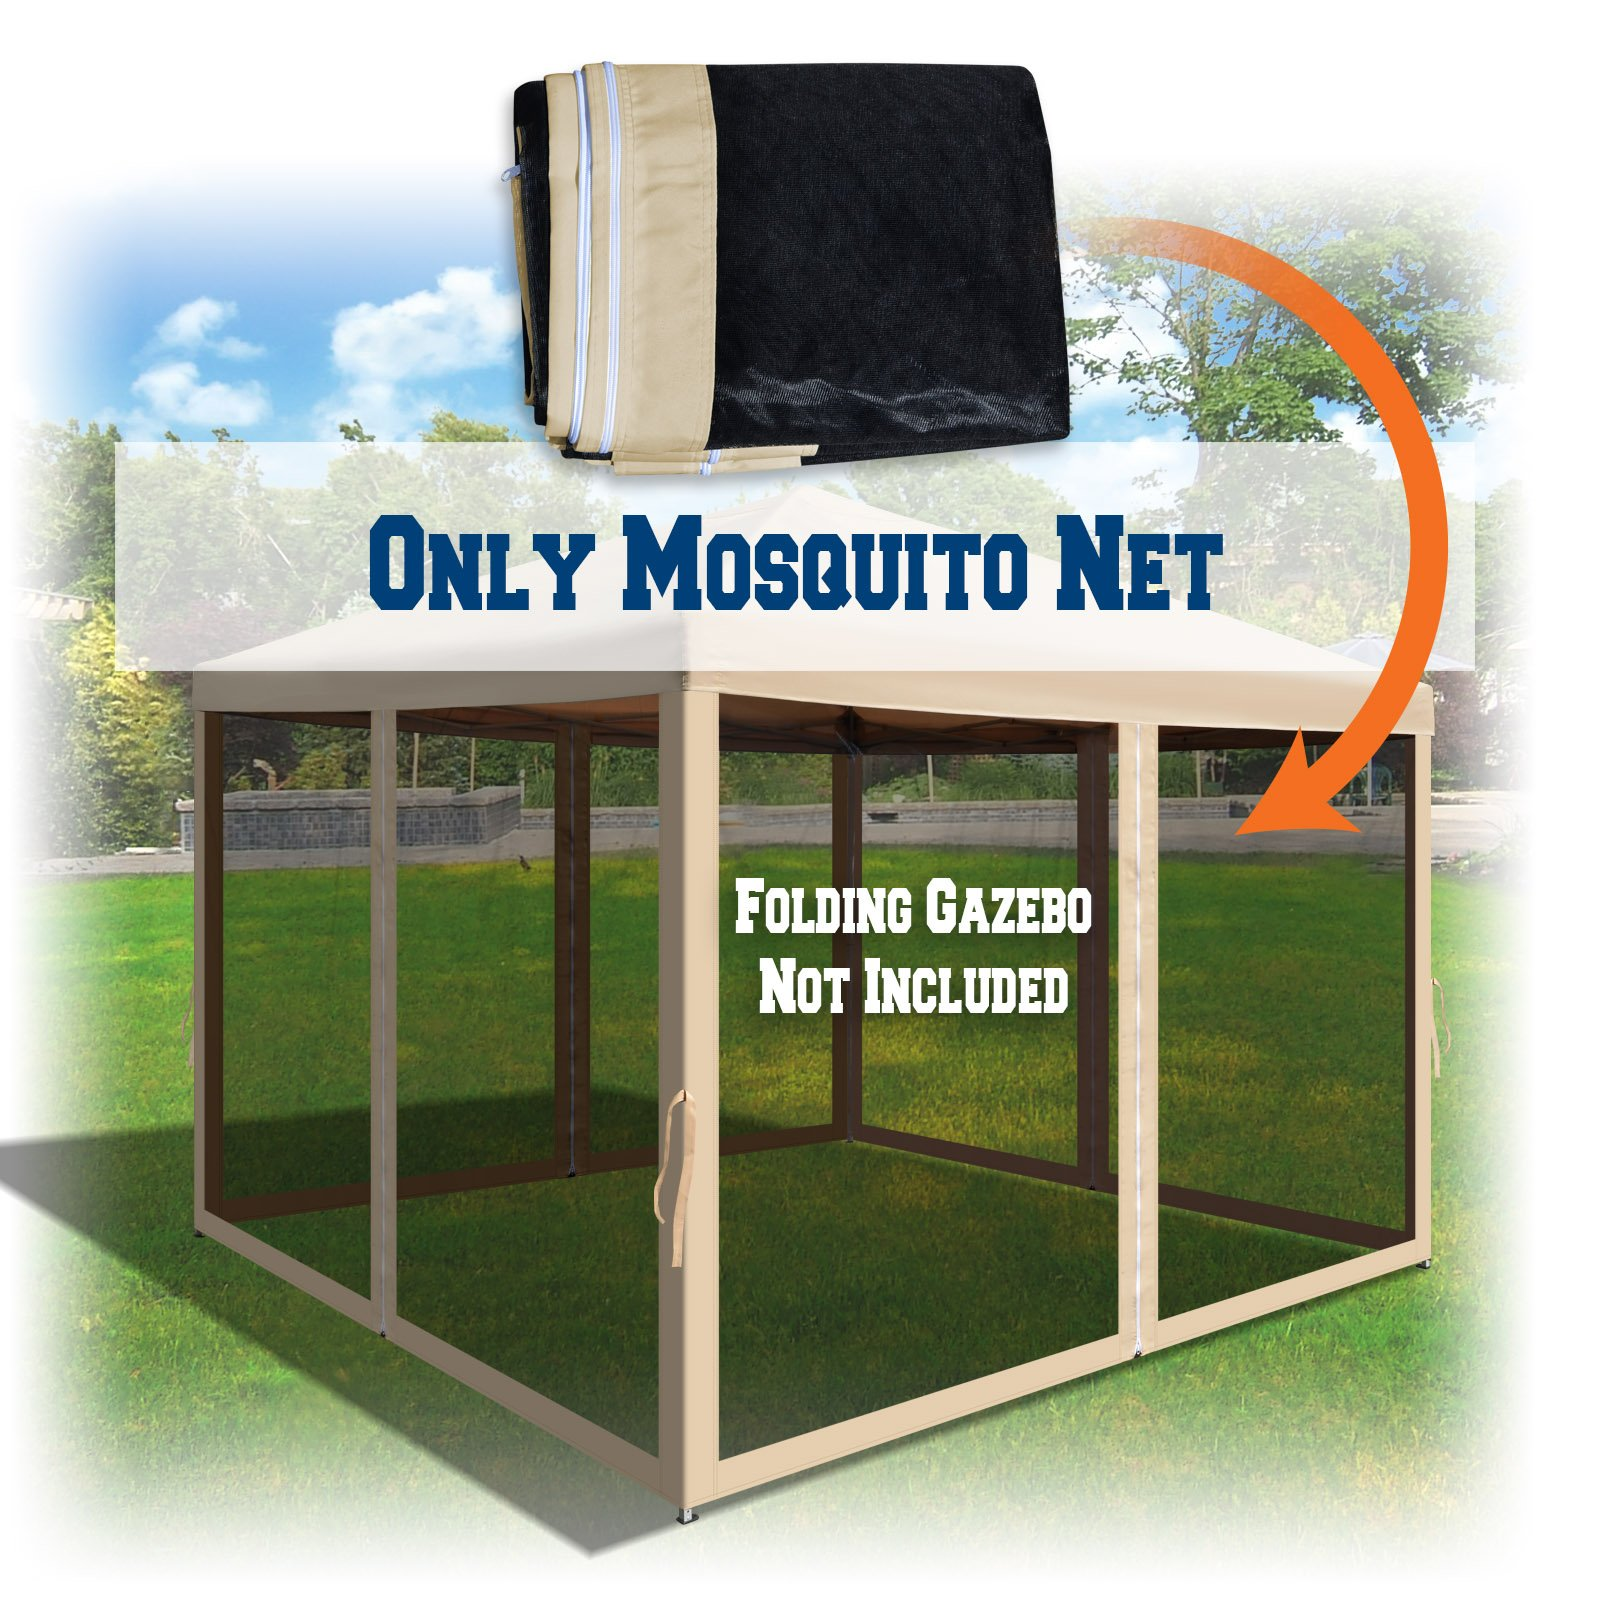 BenefitUSA Replacement Mosquito Netting for 10' x 10' Gazebo, Zippered Mesh Sidewalls Only, Pack of 4 (10' L X 6.4' W for 10' x 10' Gazebo, Beige)